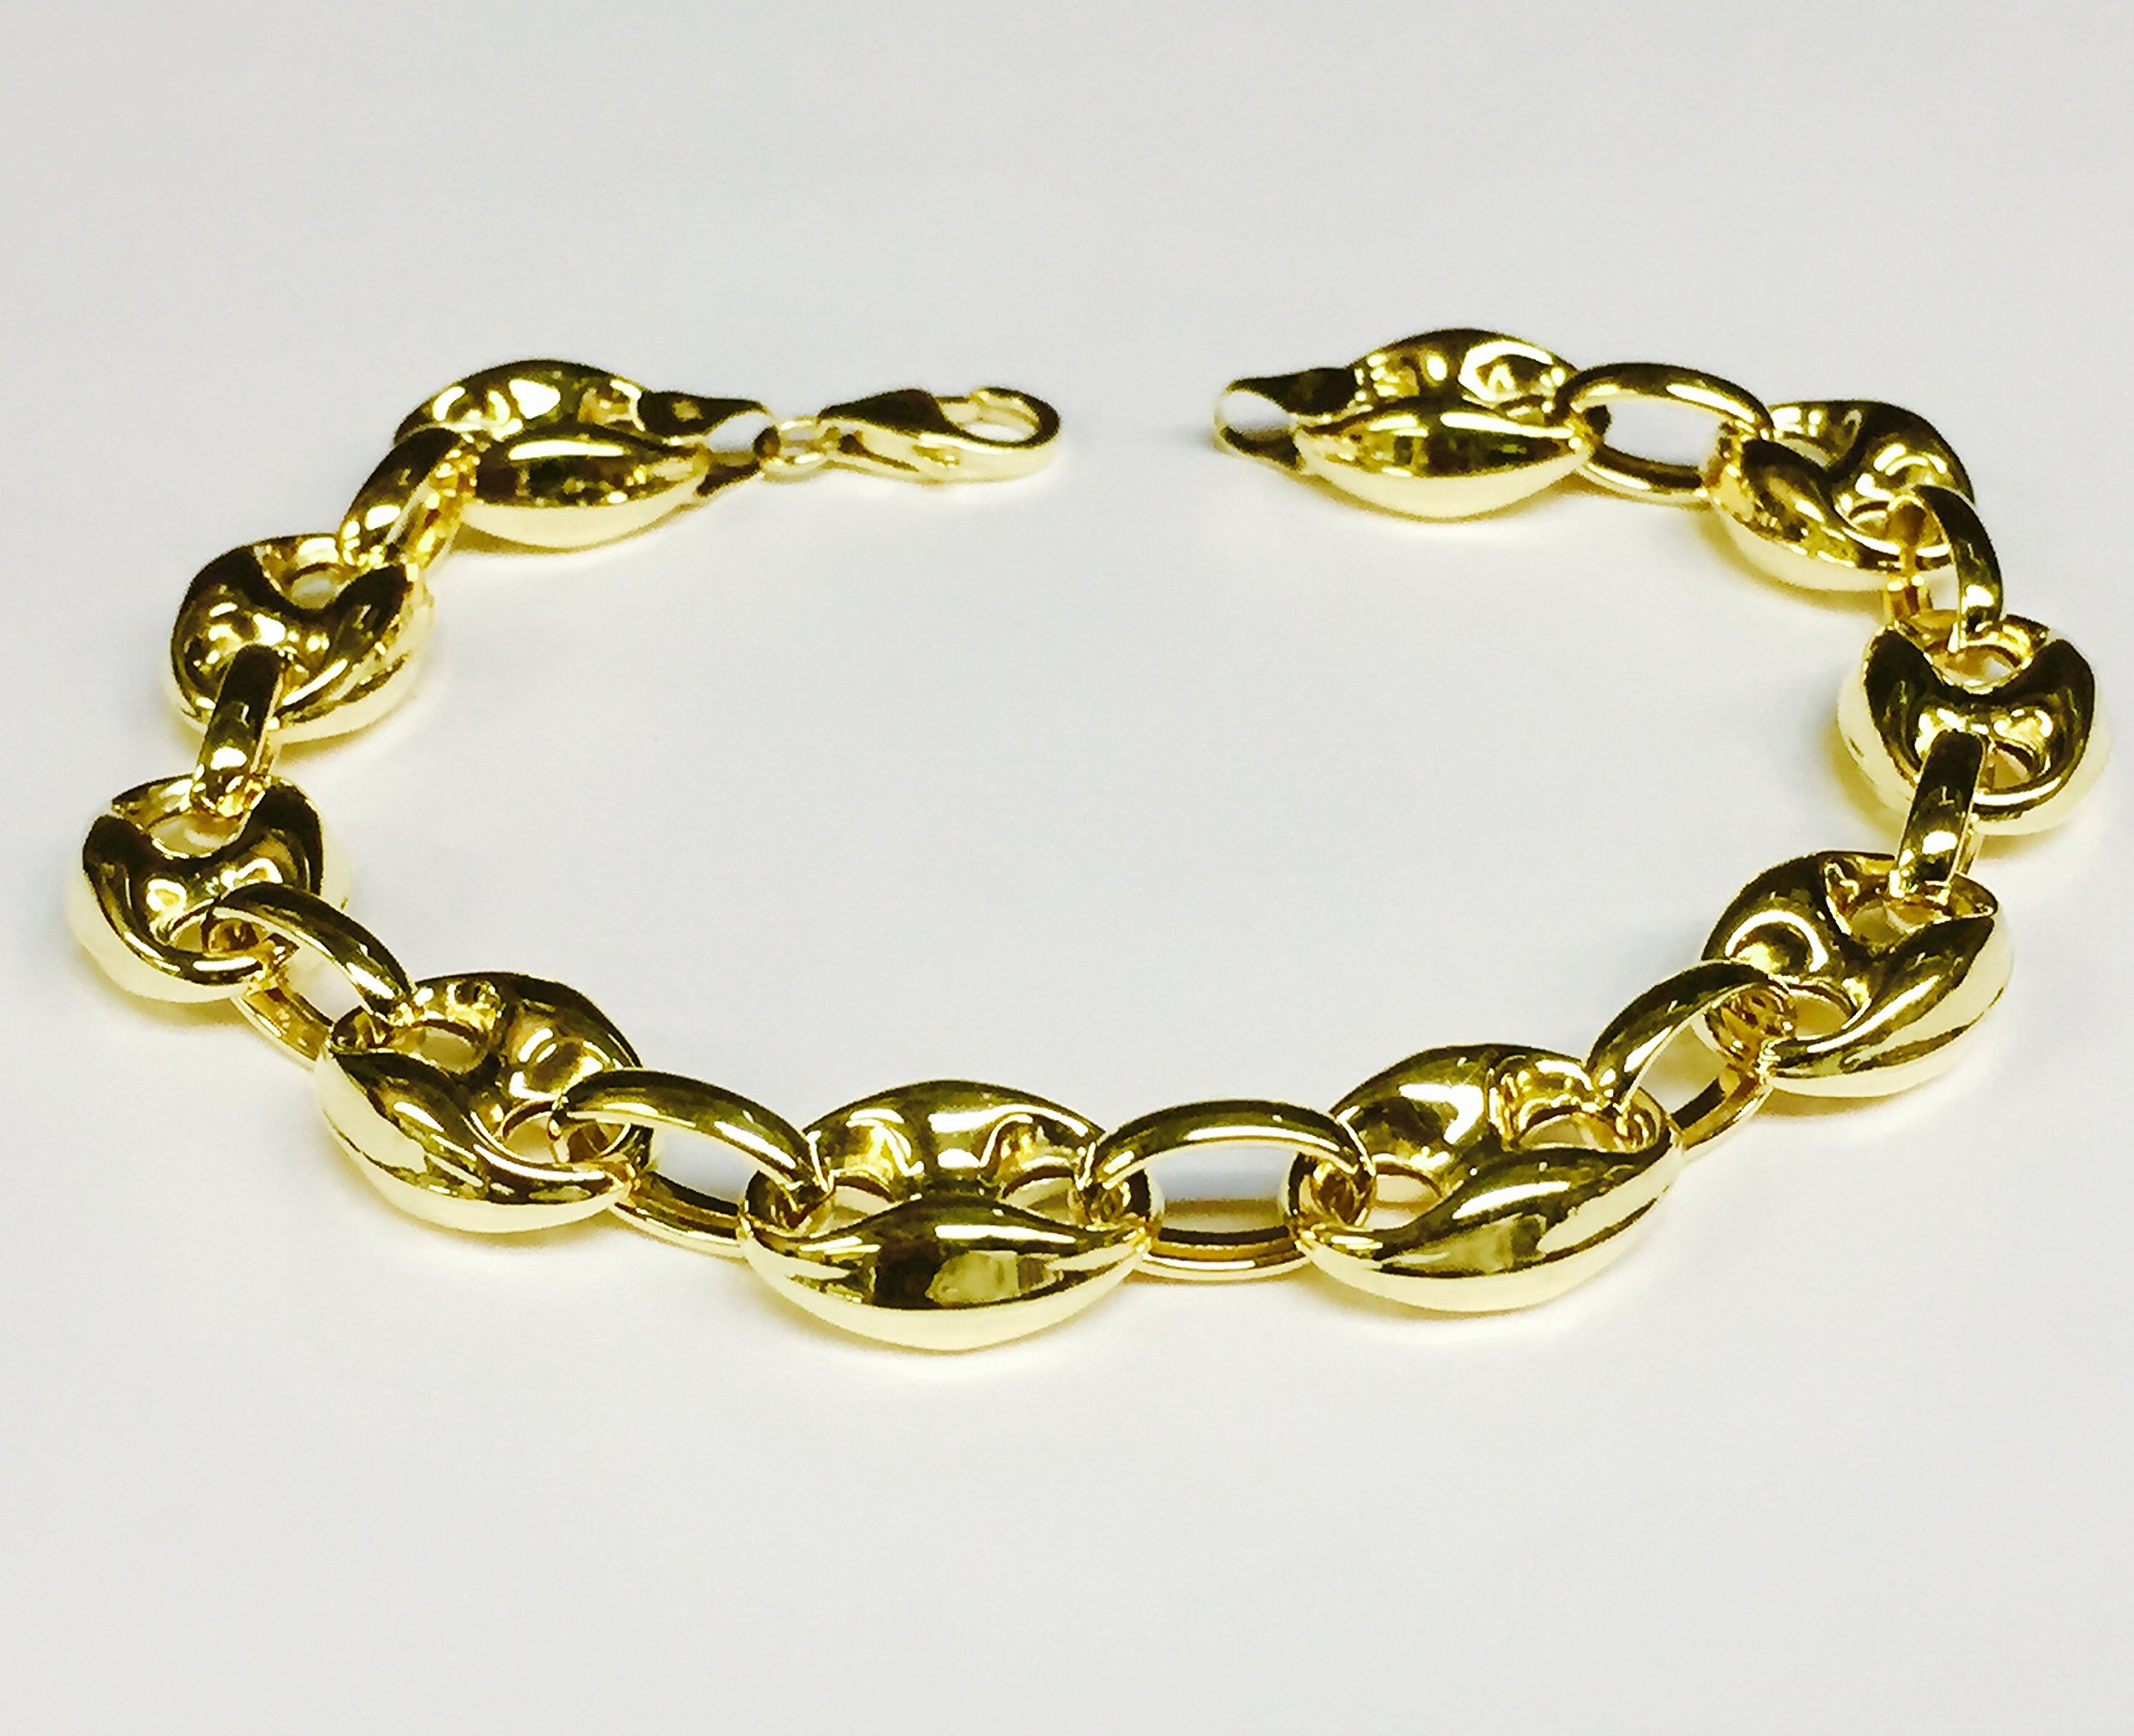 14k Yellow Gold Puffed Anchor Mariner 7.5'' link bracelet 11 MM 9 grams by TEX (Image #2)